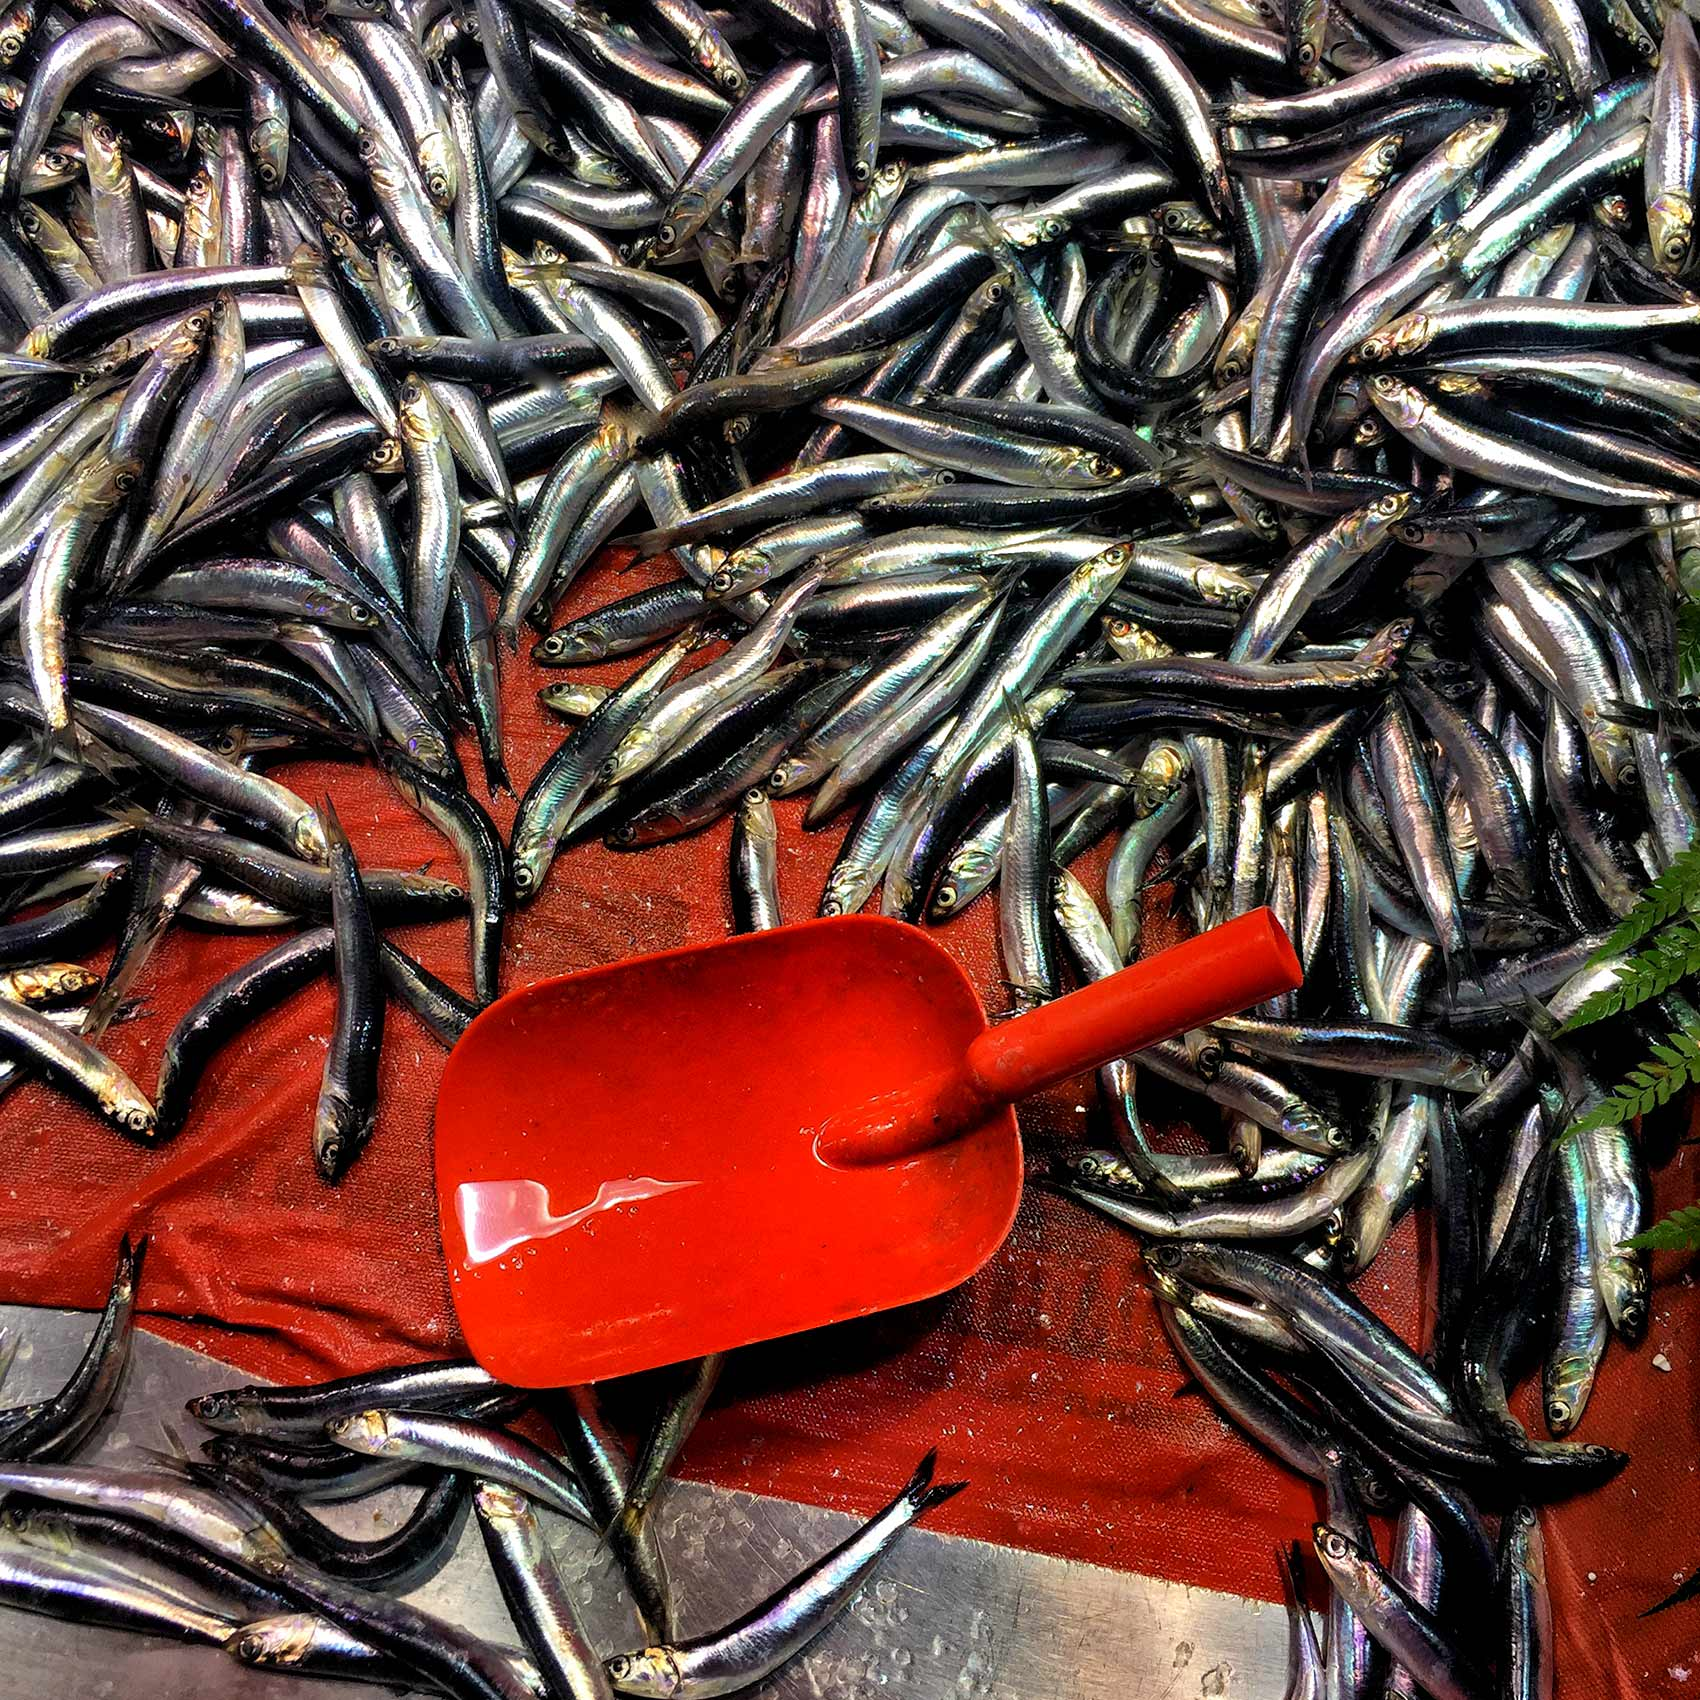 fish-for-sale-at-a-seafood-market-on-the-streets-of-istanbuls-karakoy-district